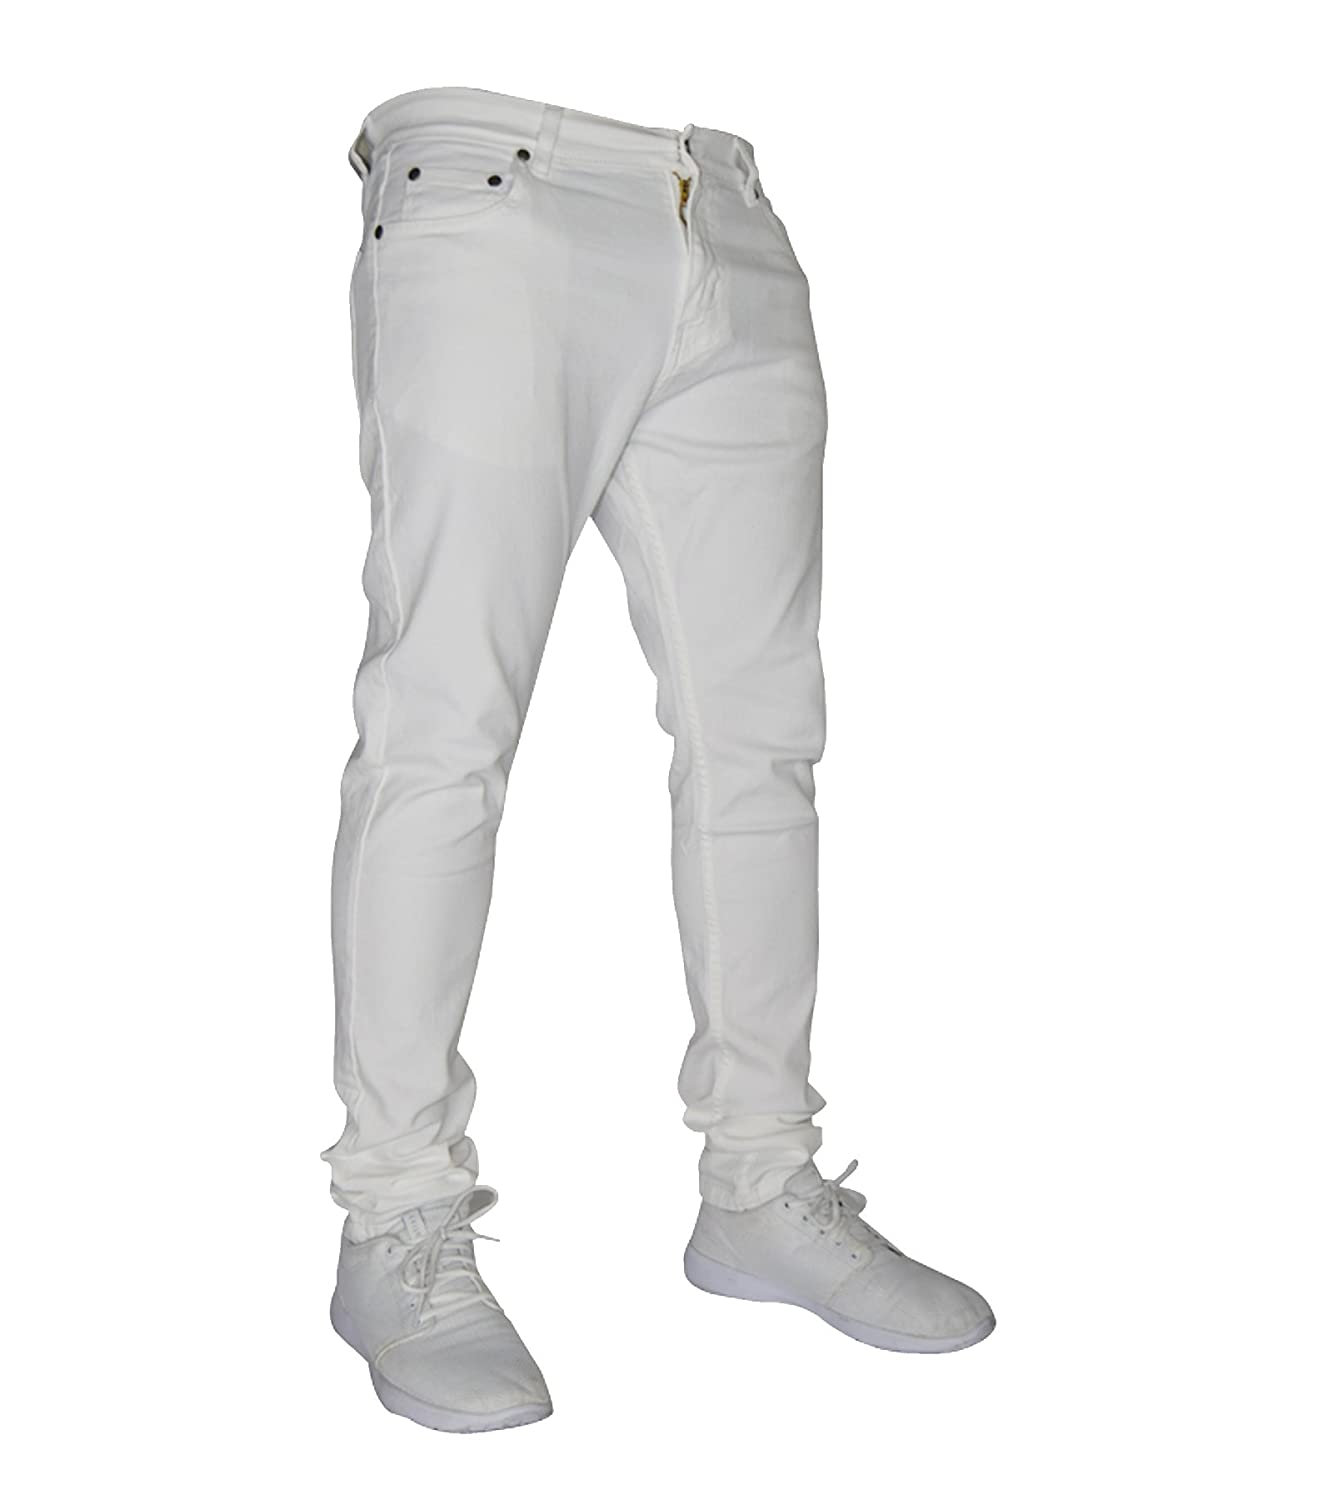 westAce Mens Stretch Skinny Fit Jeans Super Spandex Denim Pants